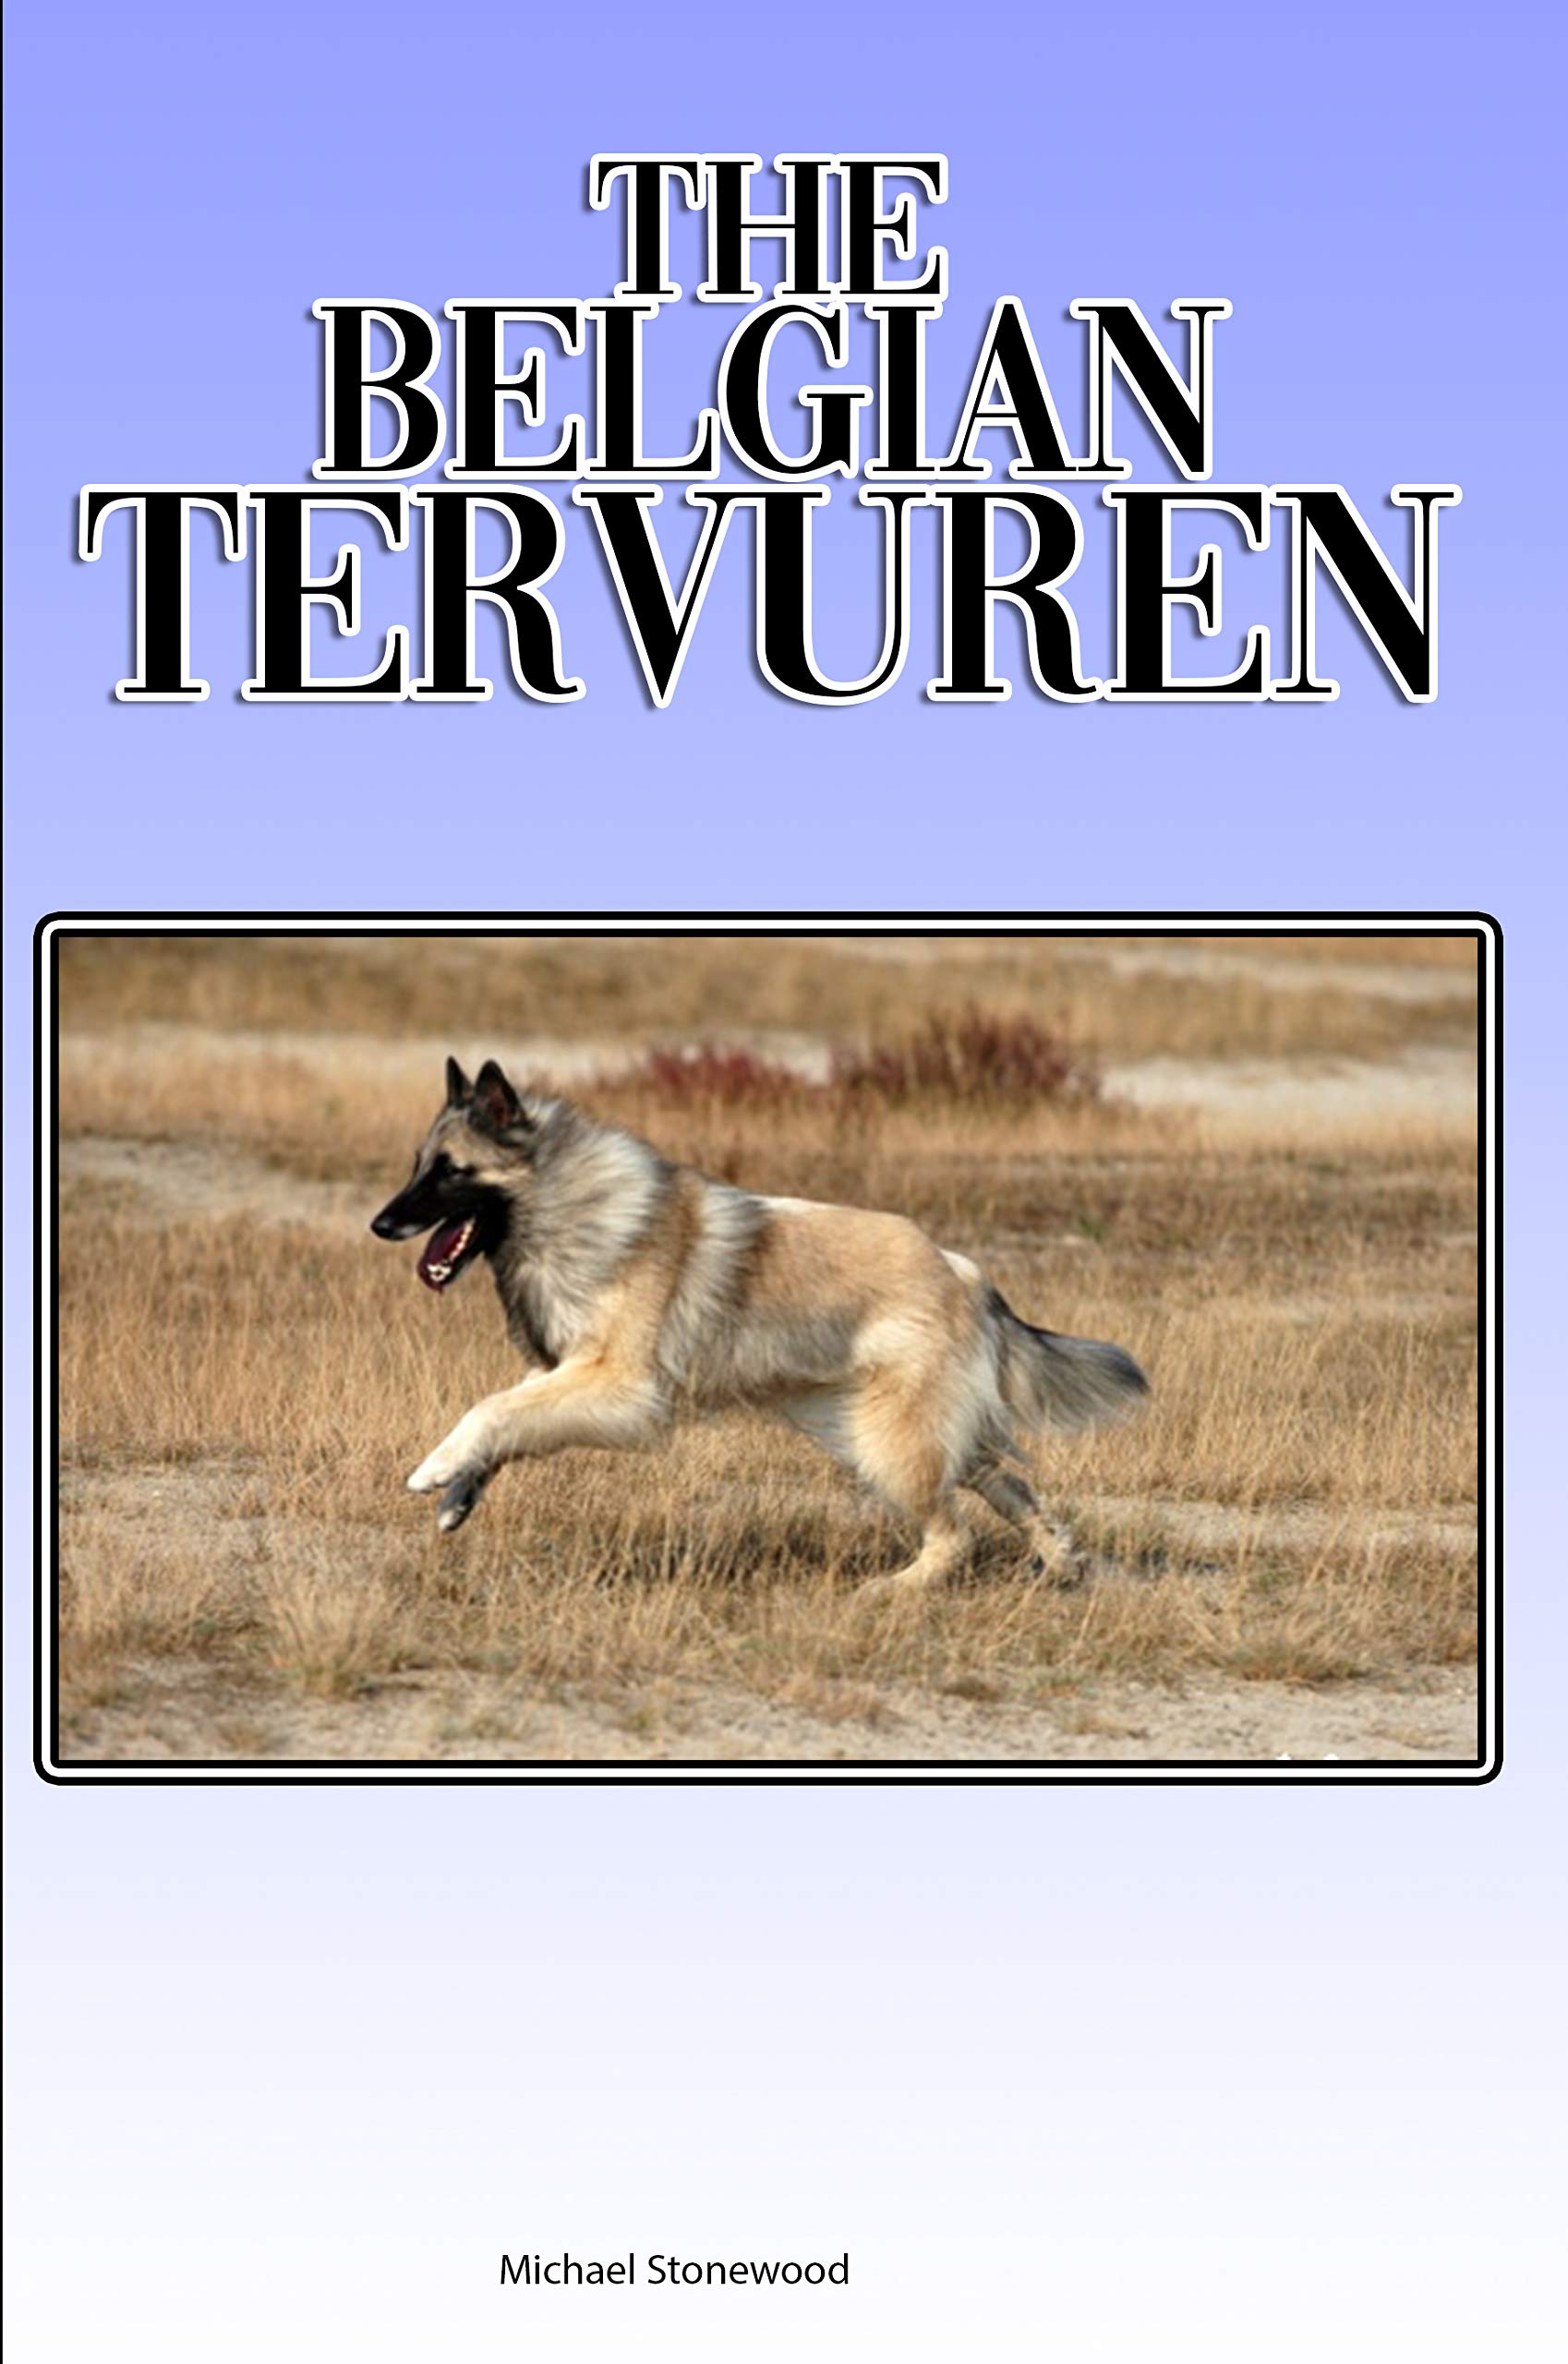 The Belgian Tervuren: A Complete and Comprehensive Beginners Guide to: Buying, Owning, Health, Grooming, Training…